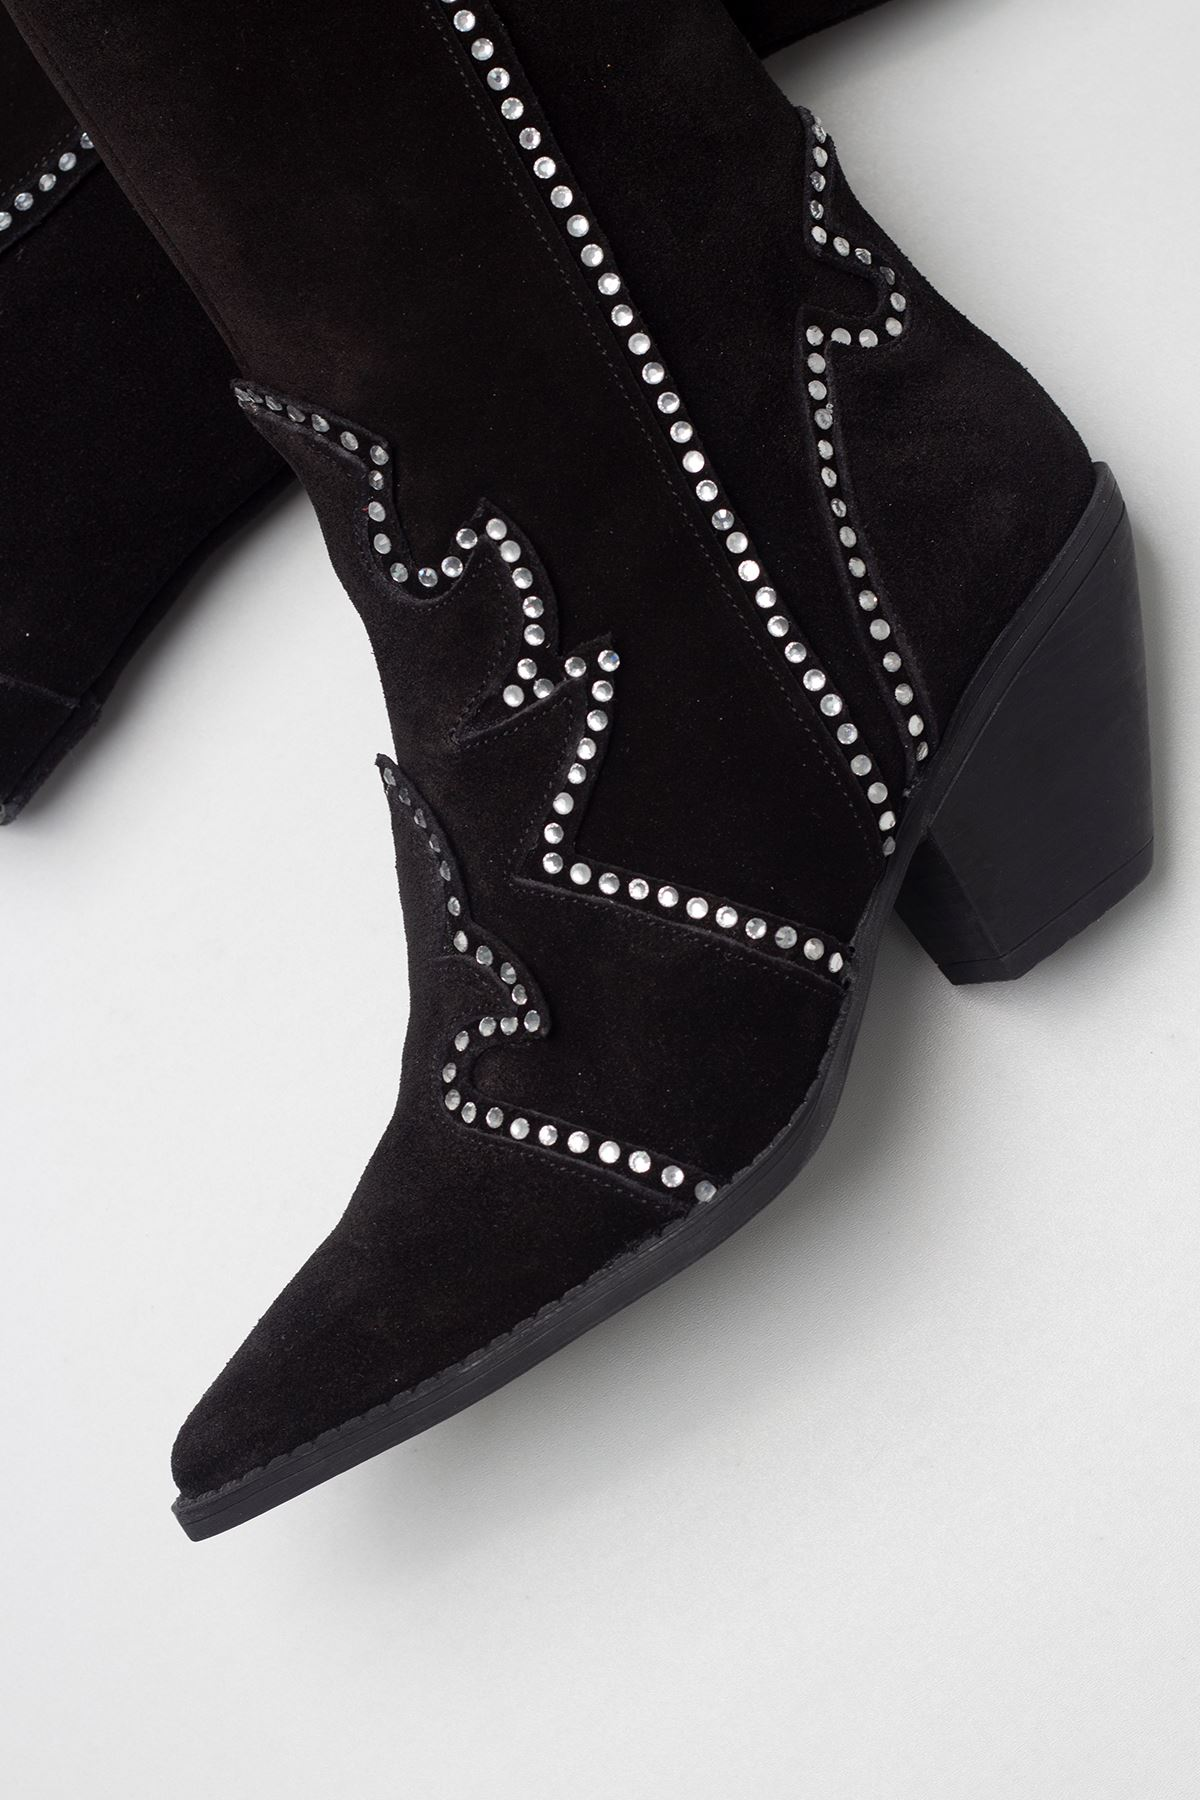 Anubis Black Genuine Leather Women Boots